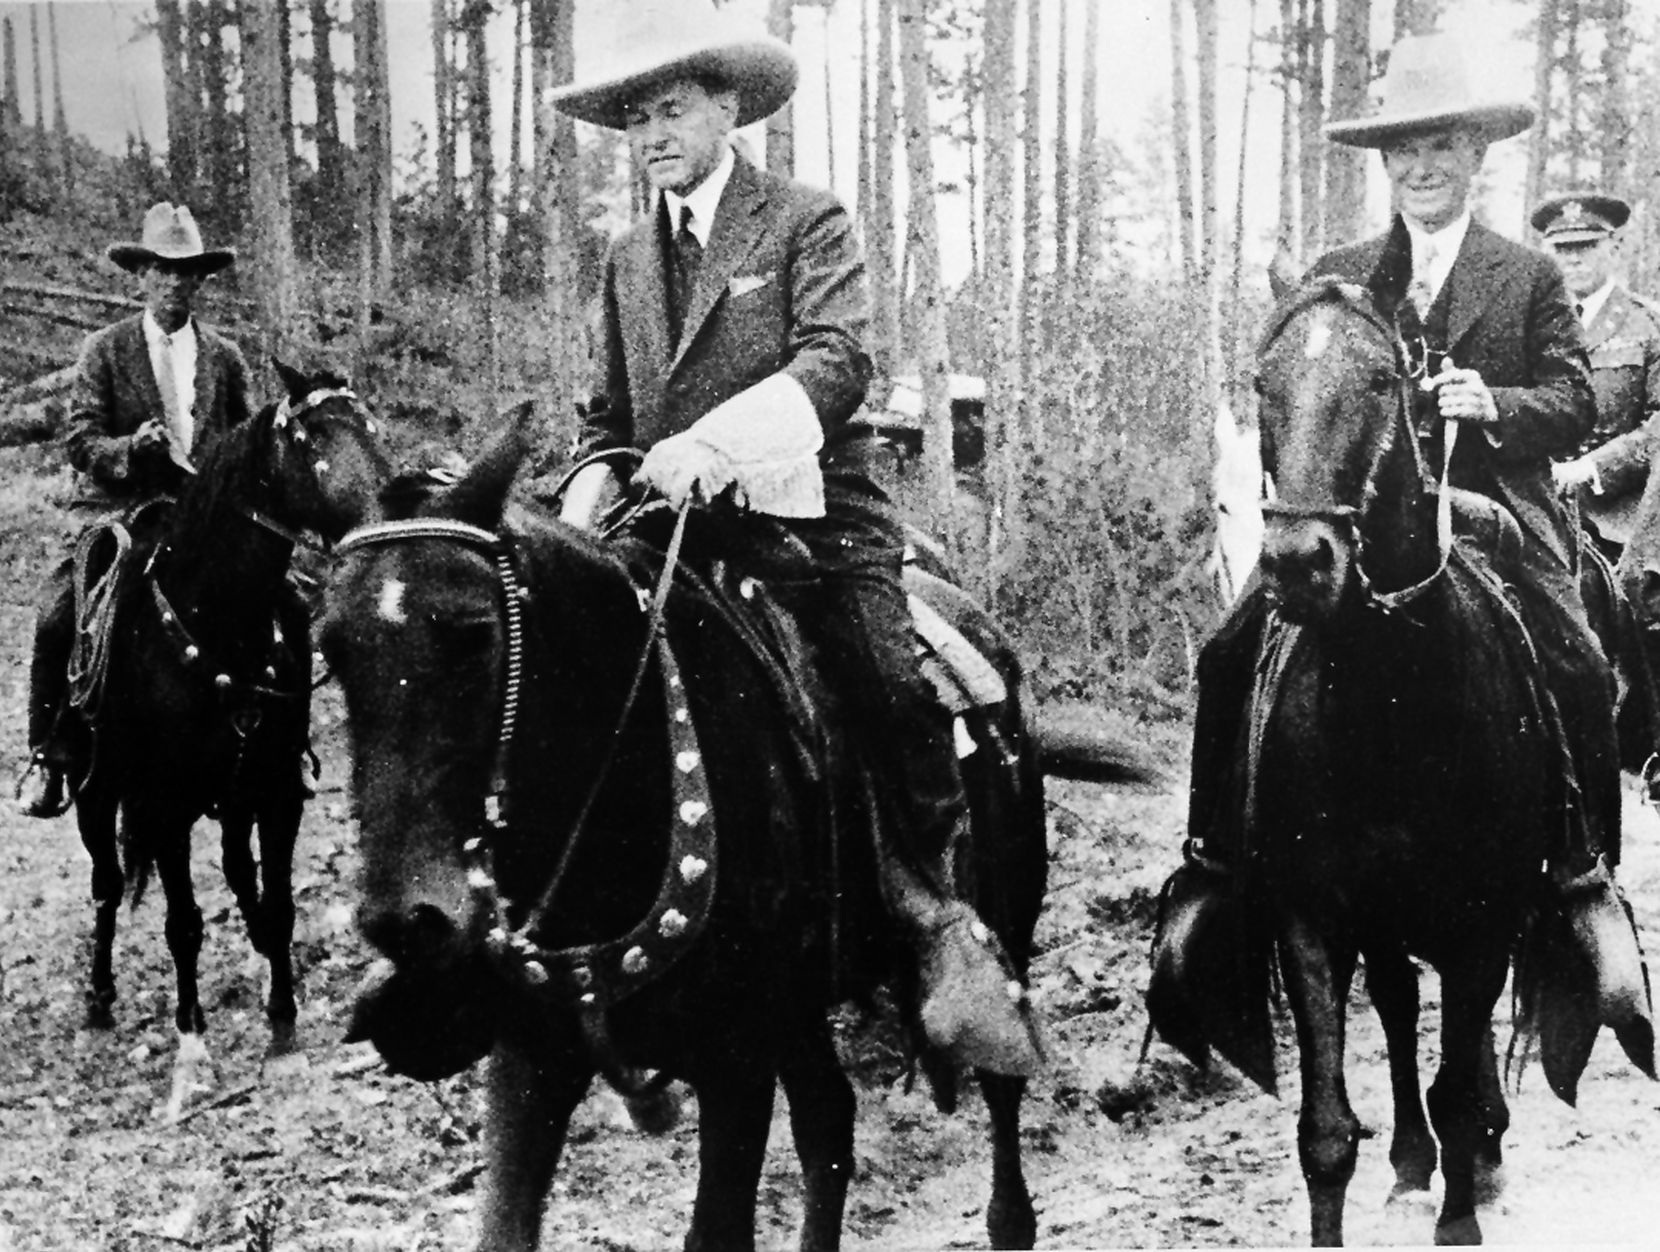 In this Aug. 15, 1927 photo, President Calvin Coolidge is on horseback to attend the dedication ceremony of the Mount Rushmore Memorial in South Dakota.